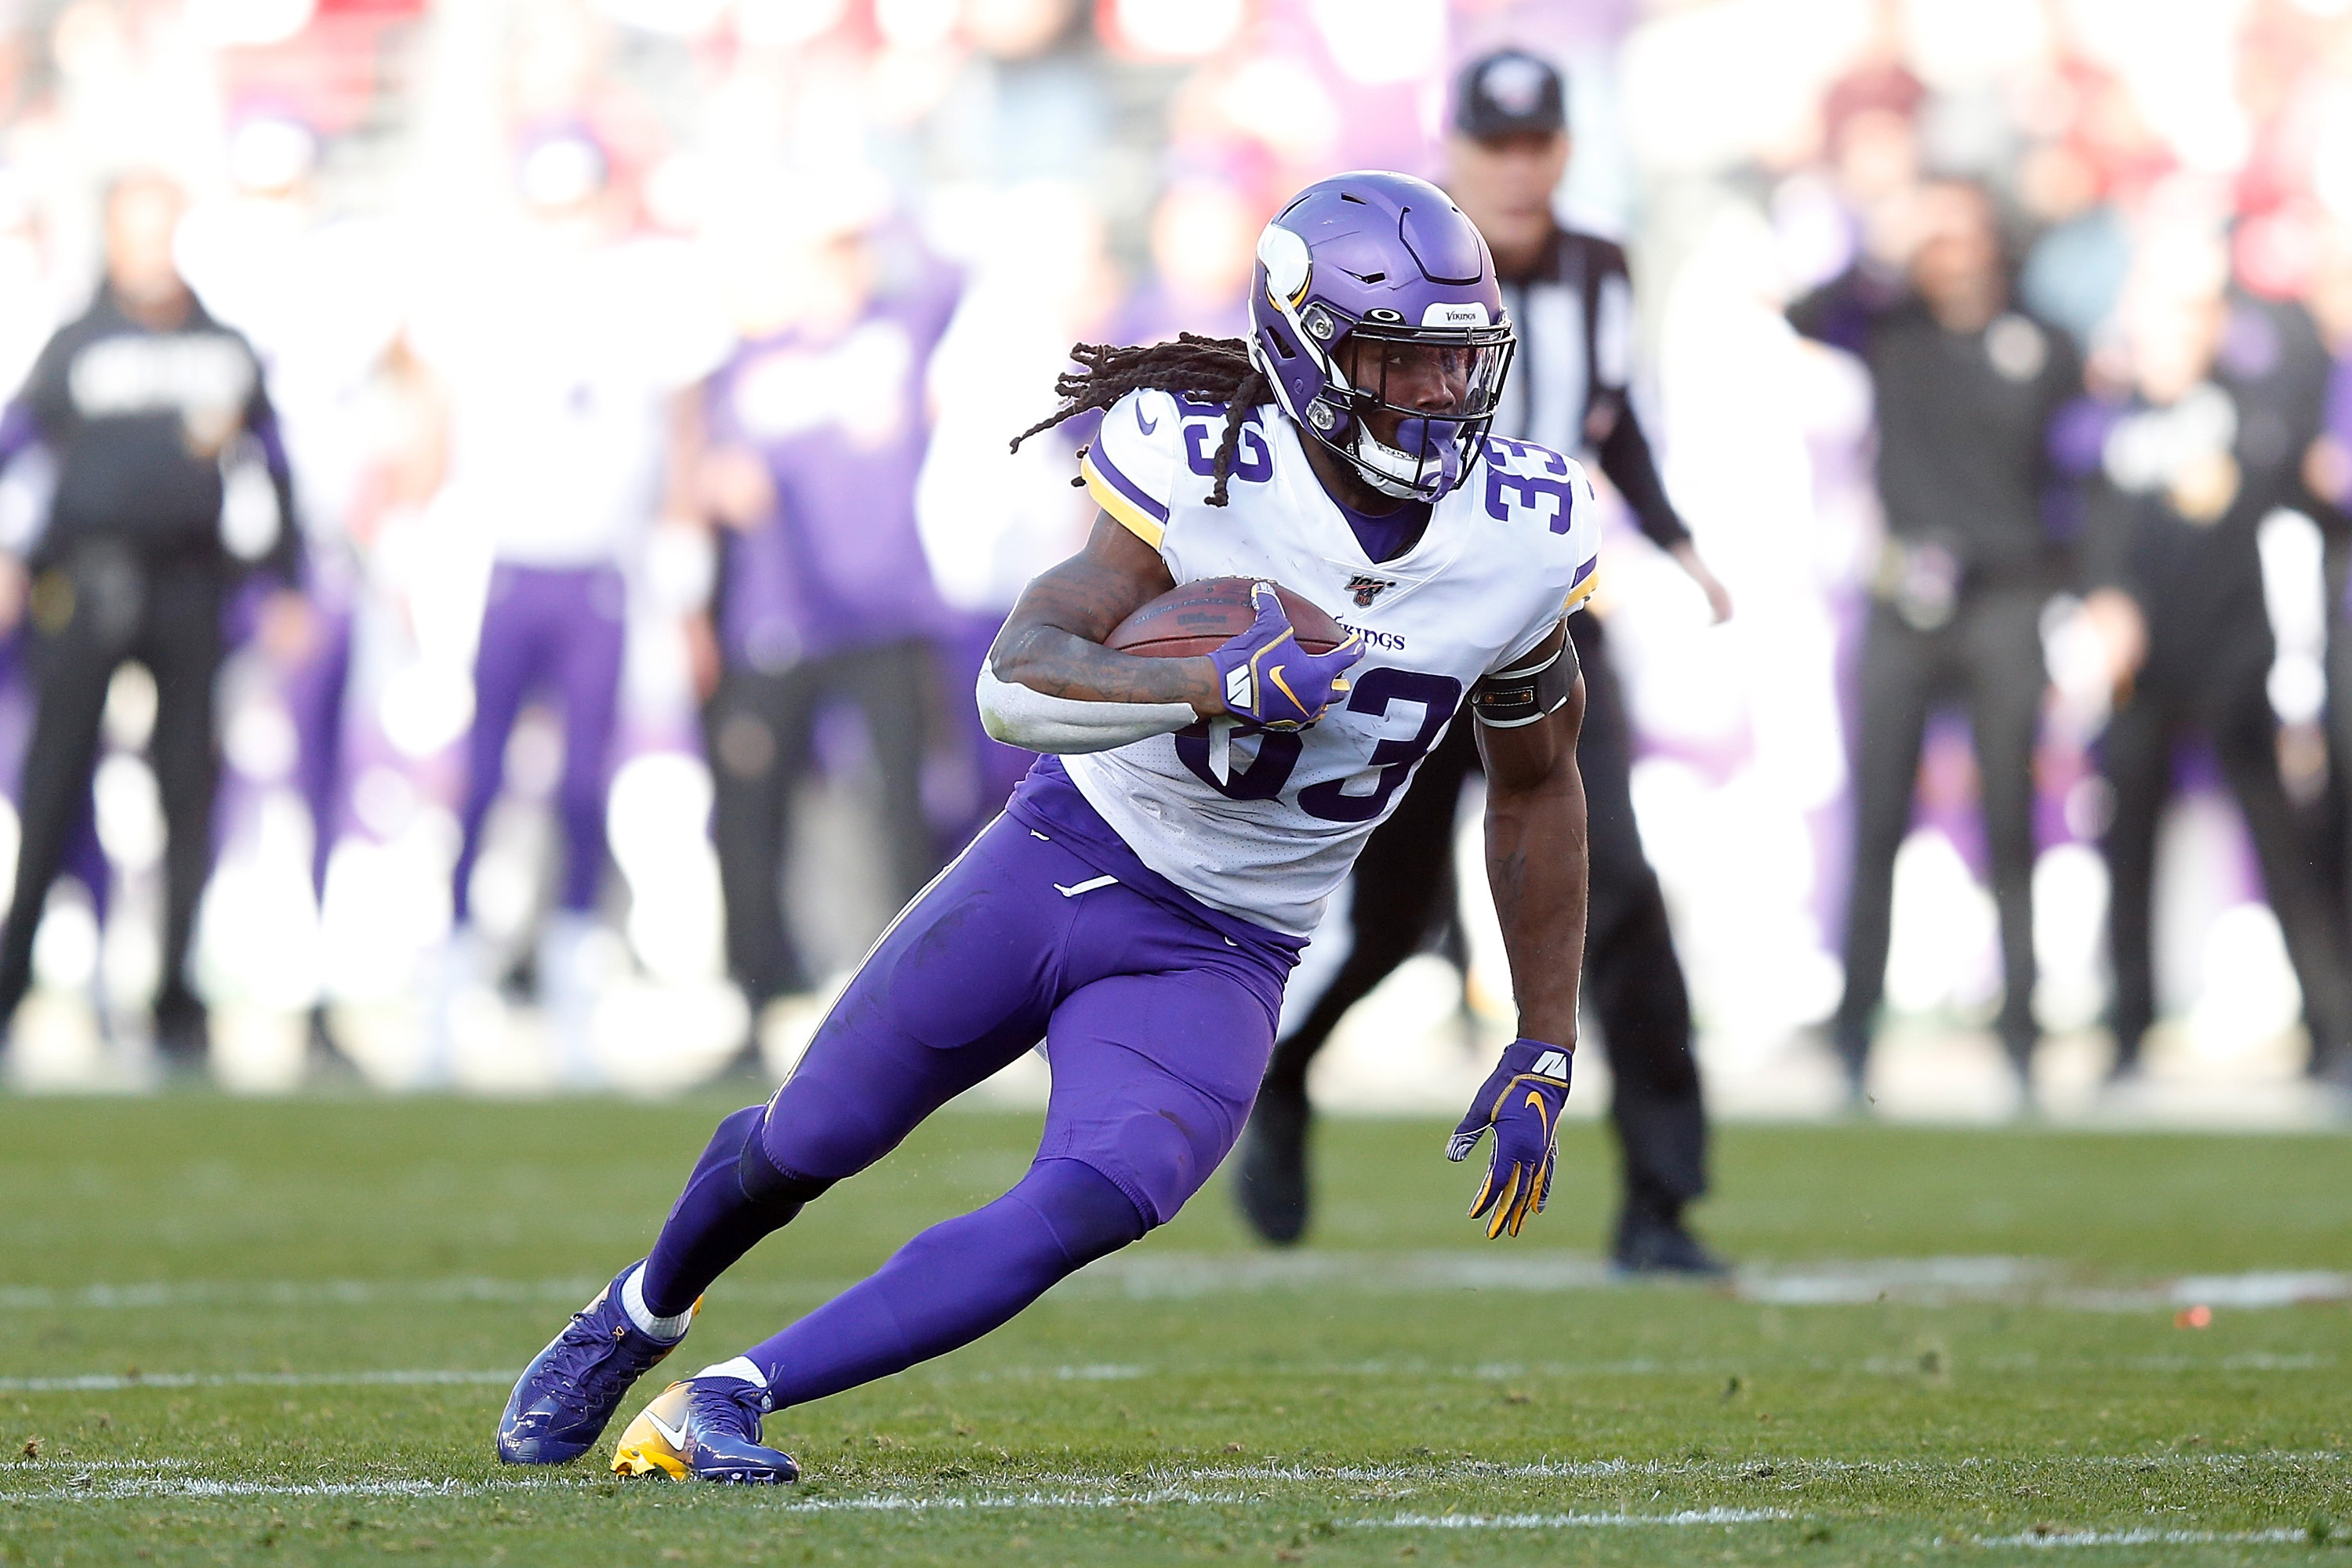 Dalvin Cook #33 of the Minnesota Vikings runs the ball in the third quarter of the NFC Divisional Round Playoff game against the San Francisco 49ers at Levi's Stadium on January 11, 2020 in Santa Clara, California.